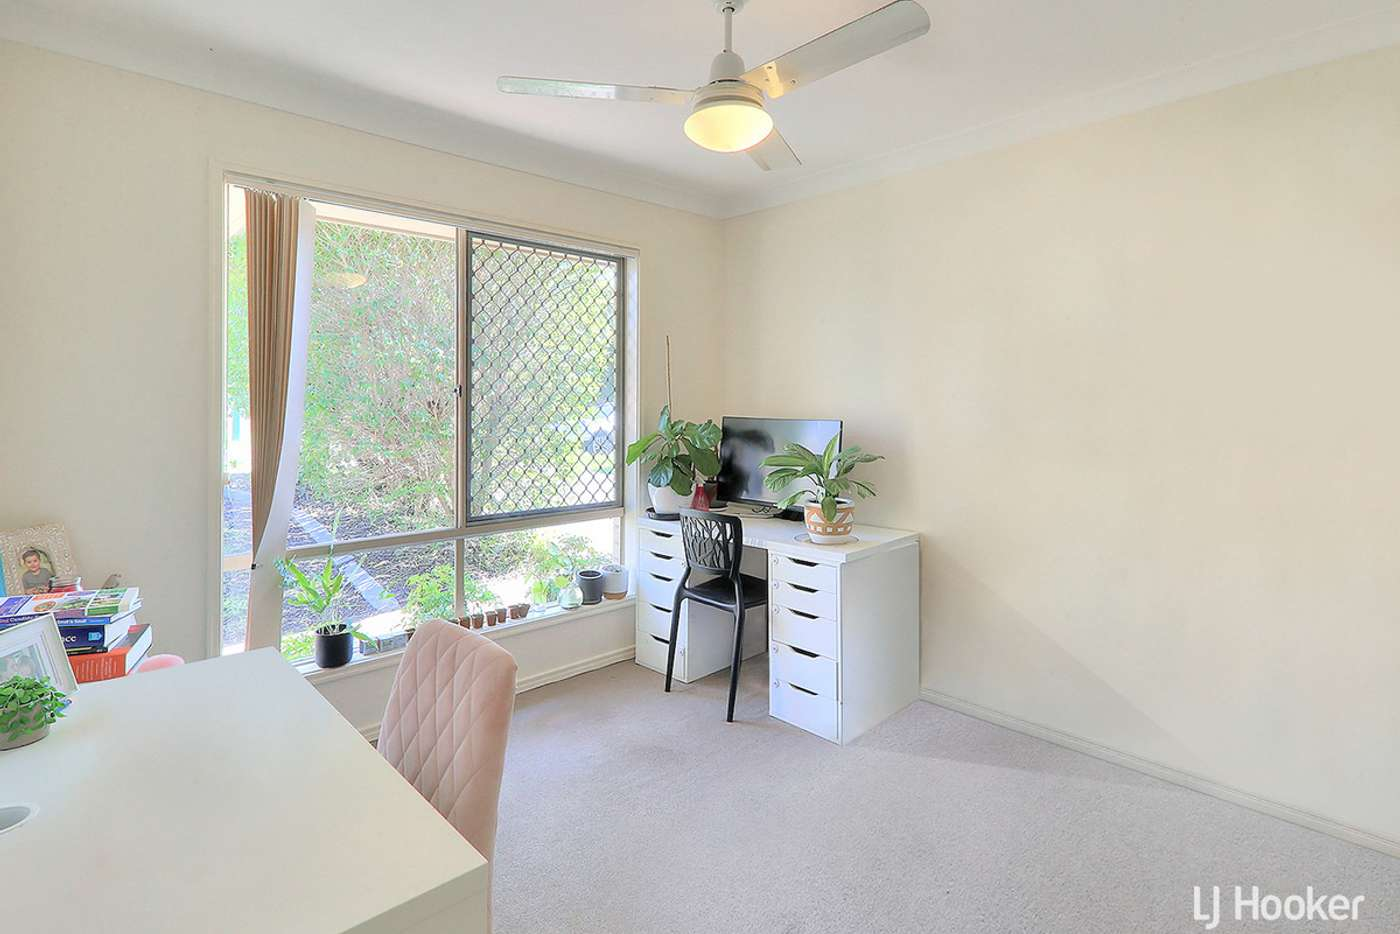 Fifth view of Homely house listing, 25 Hinterland Crescent, Algester QLD 4115